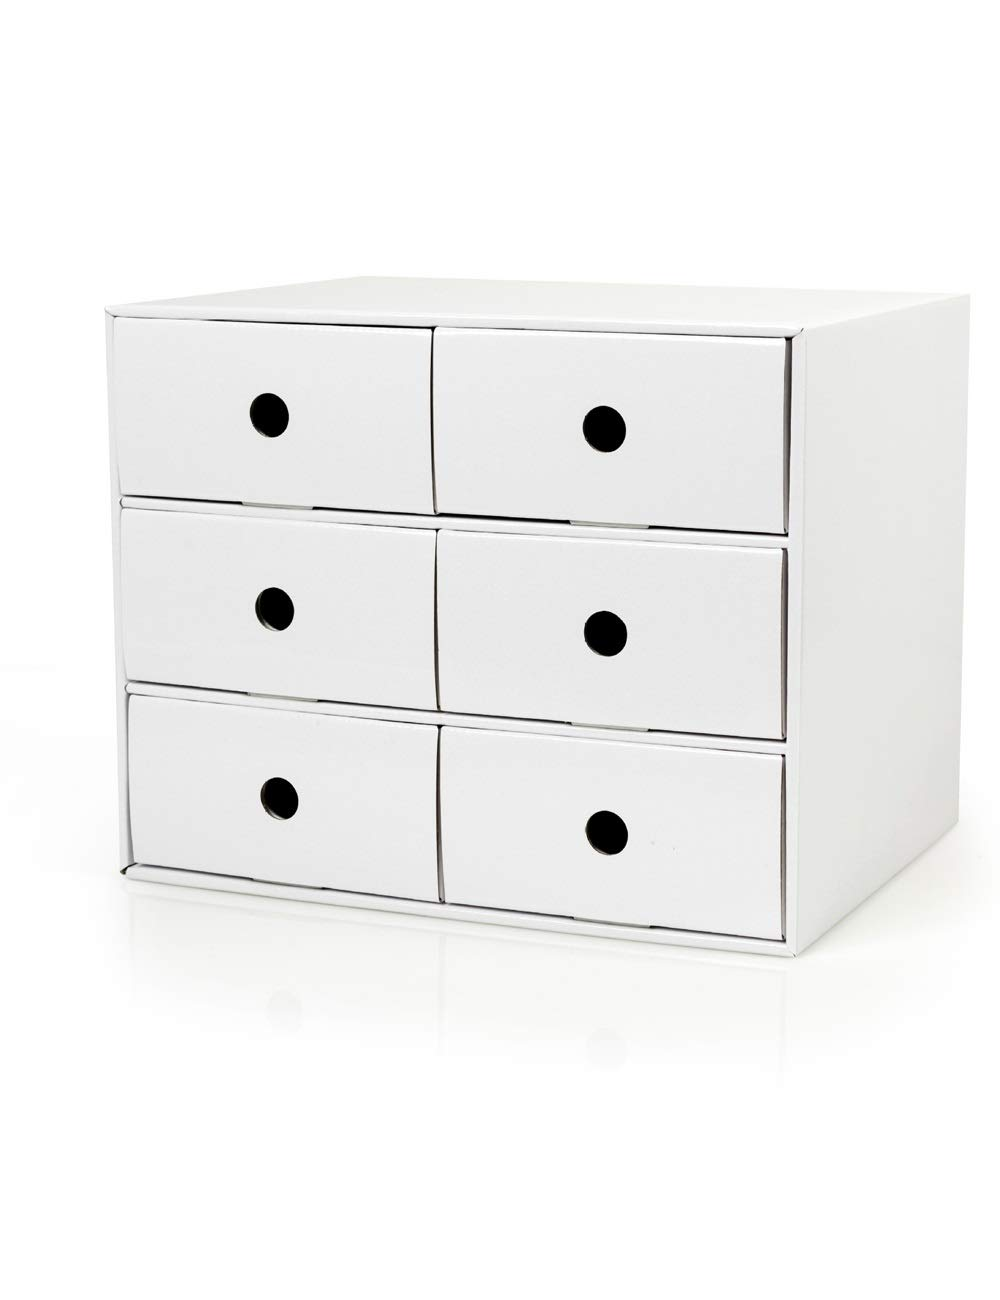 File Cabinet Drawer Moving Multi-Function Cabinet Desktop Archive Storage Manager 6 Drawers Color: White Office File Storage Cabinet Storage Box Filing cabinets